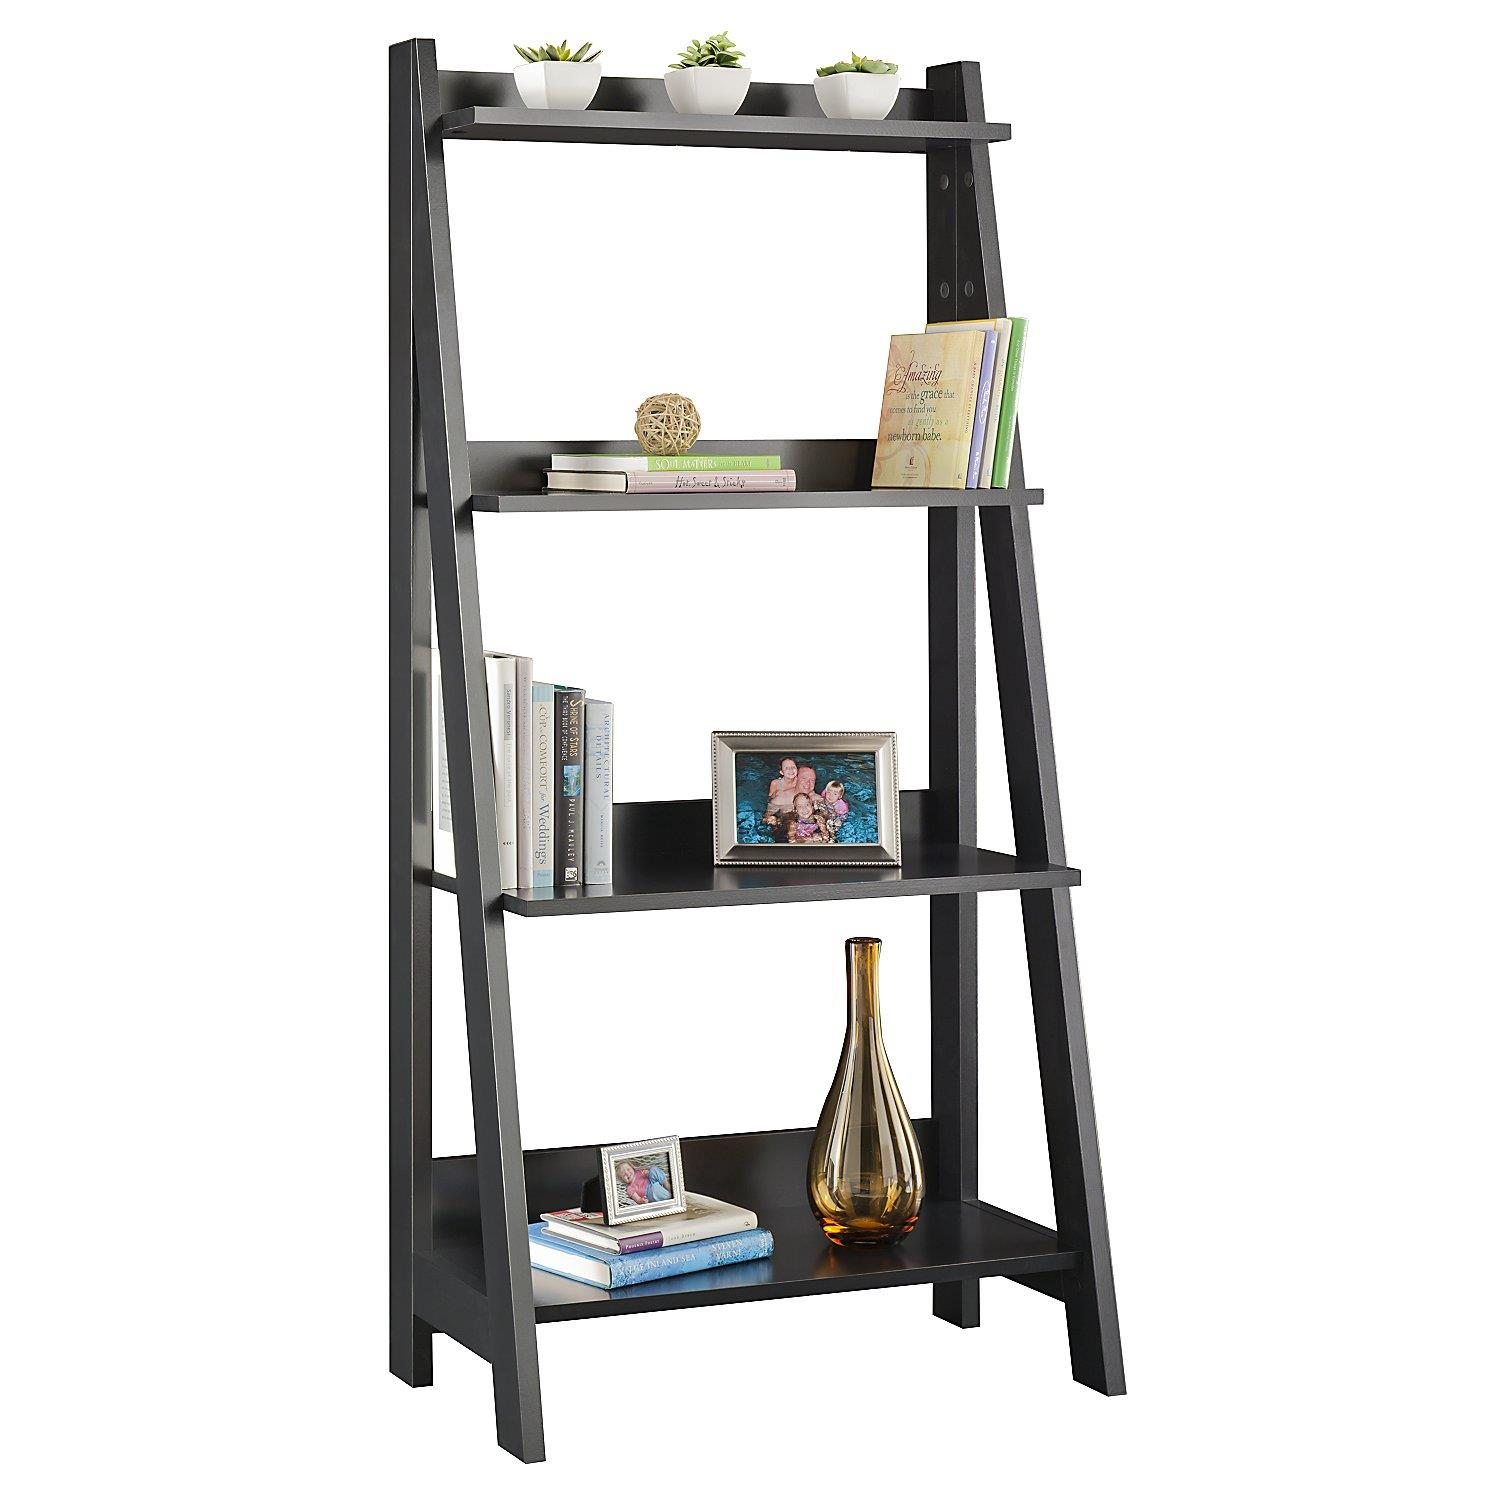 Image of: Ladder bookshelf design